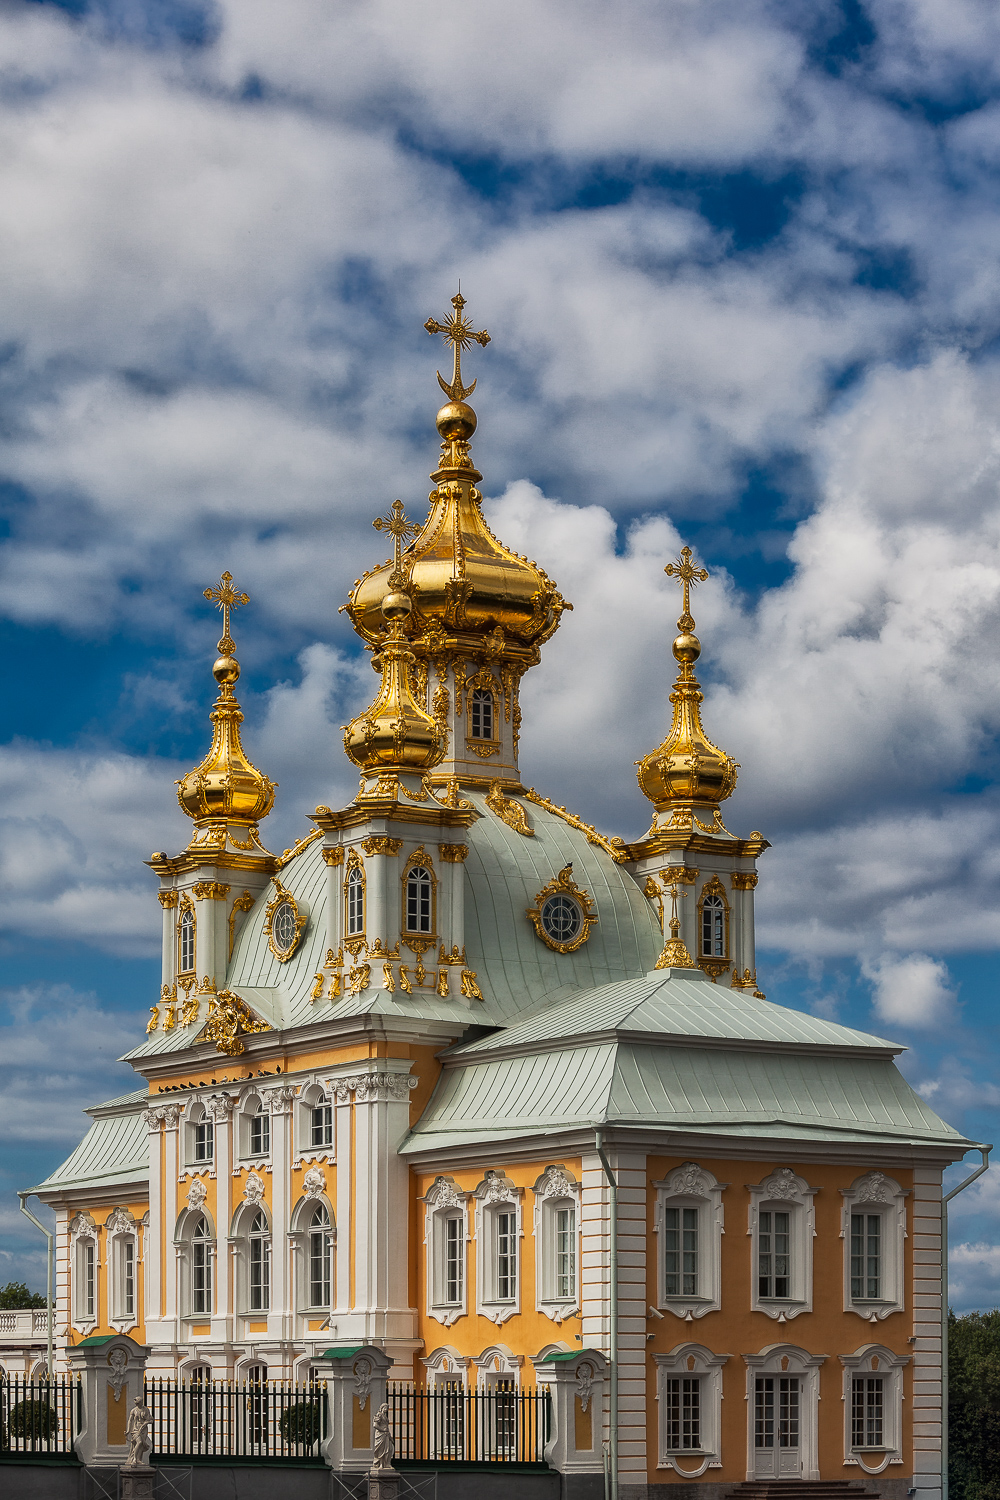 Spectacular domes, gleaming on a summer's day, set off a magnificent Russian building at Peterhof Summer Palace near St. Petersburg, Russia.